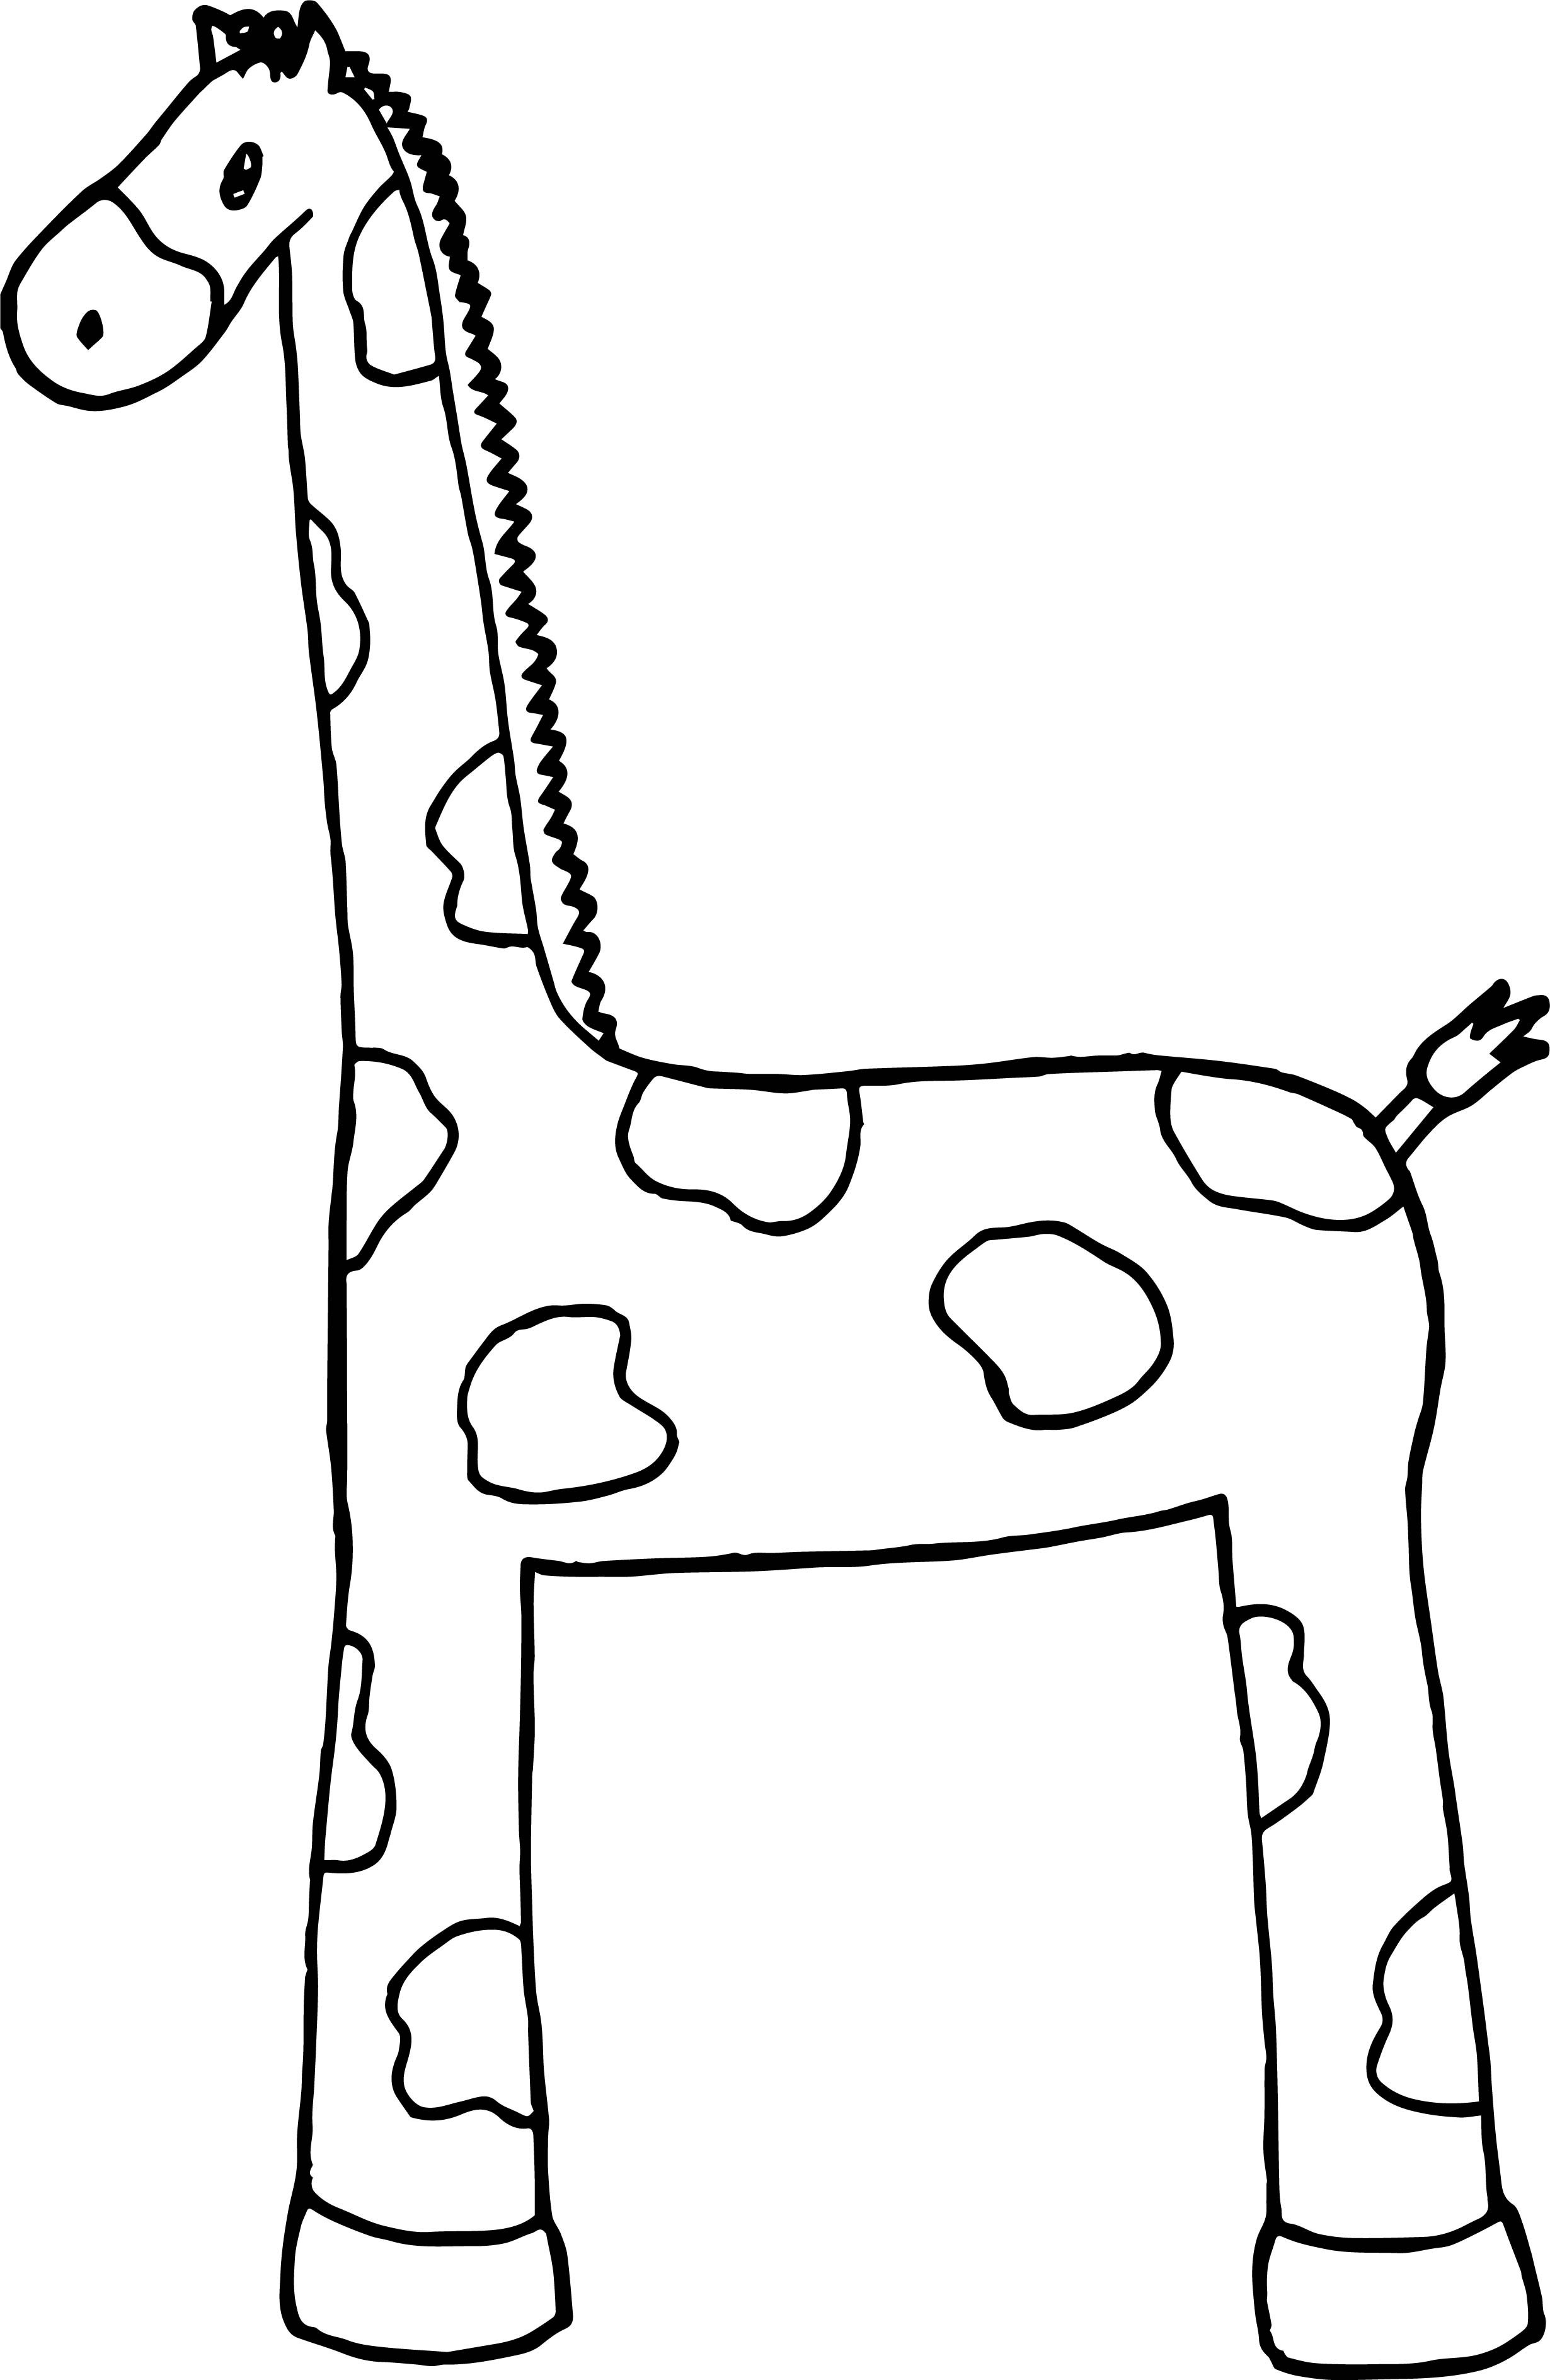 Giraffe Basic Coloring Page